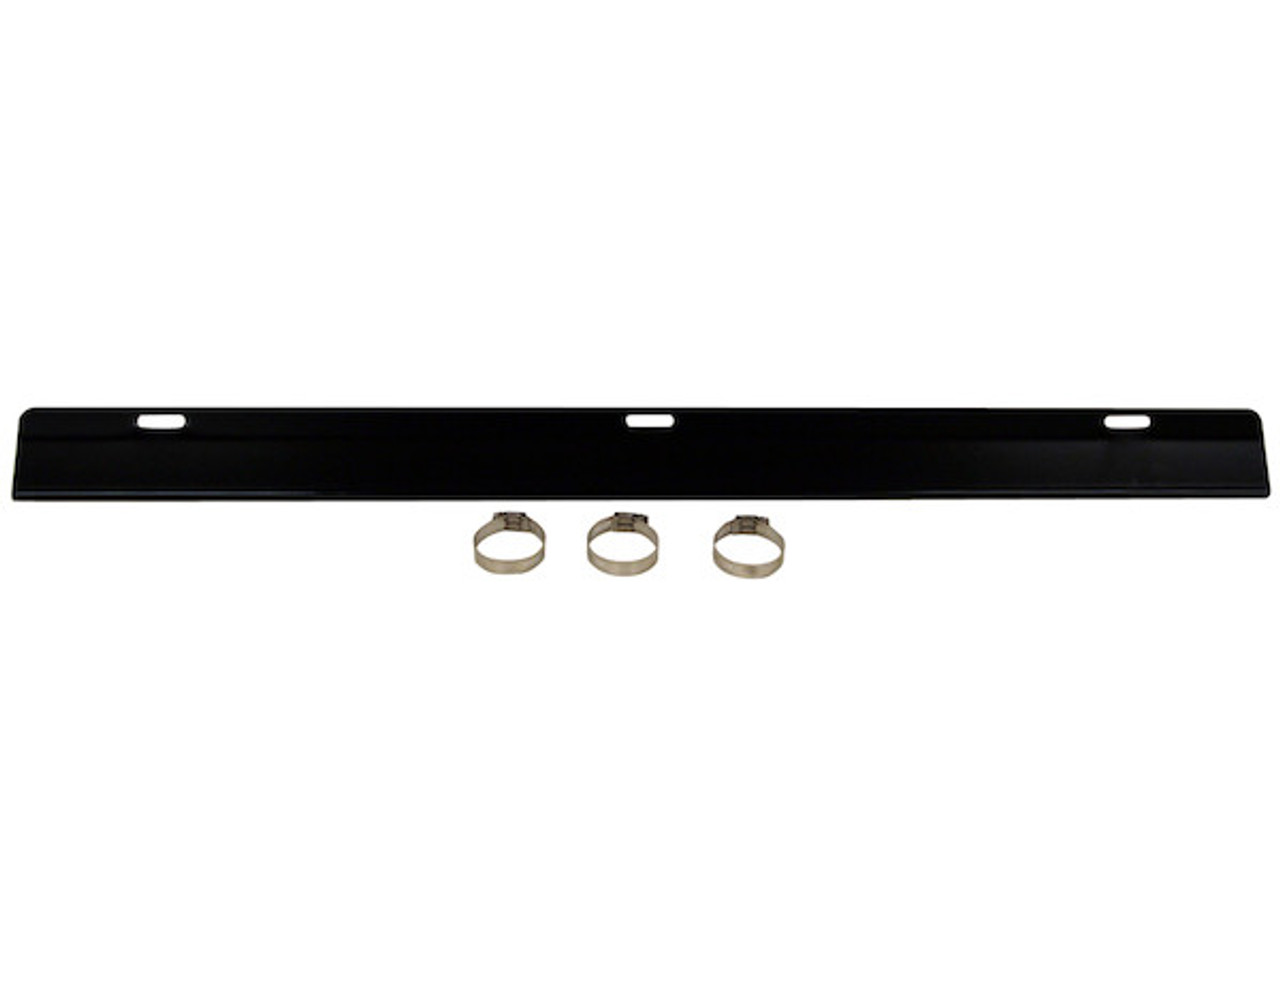 Buyers 1501193 Ladder Rack Wind Deflector Kit for Painters, Electricians, Contractors Picture # 1